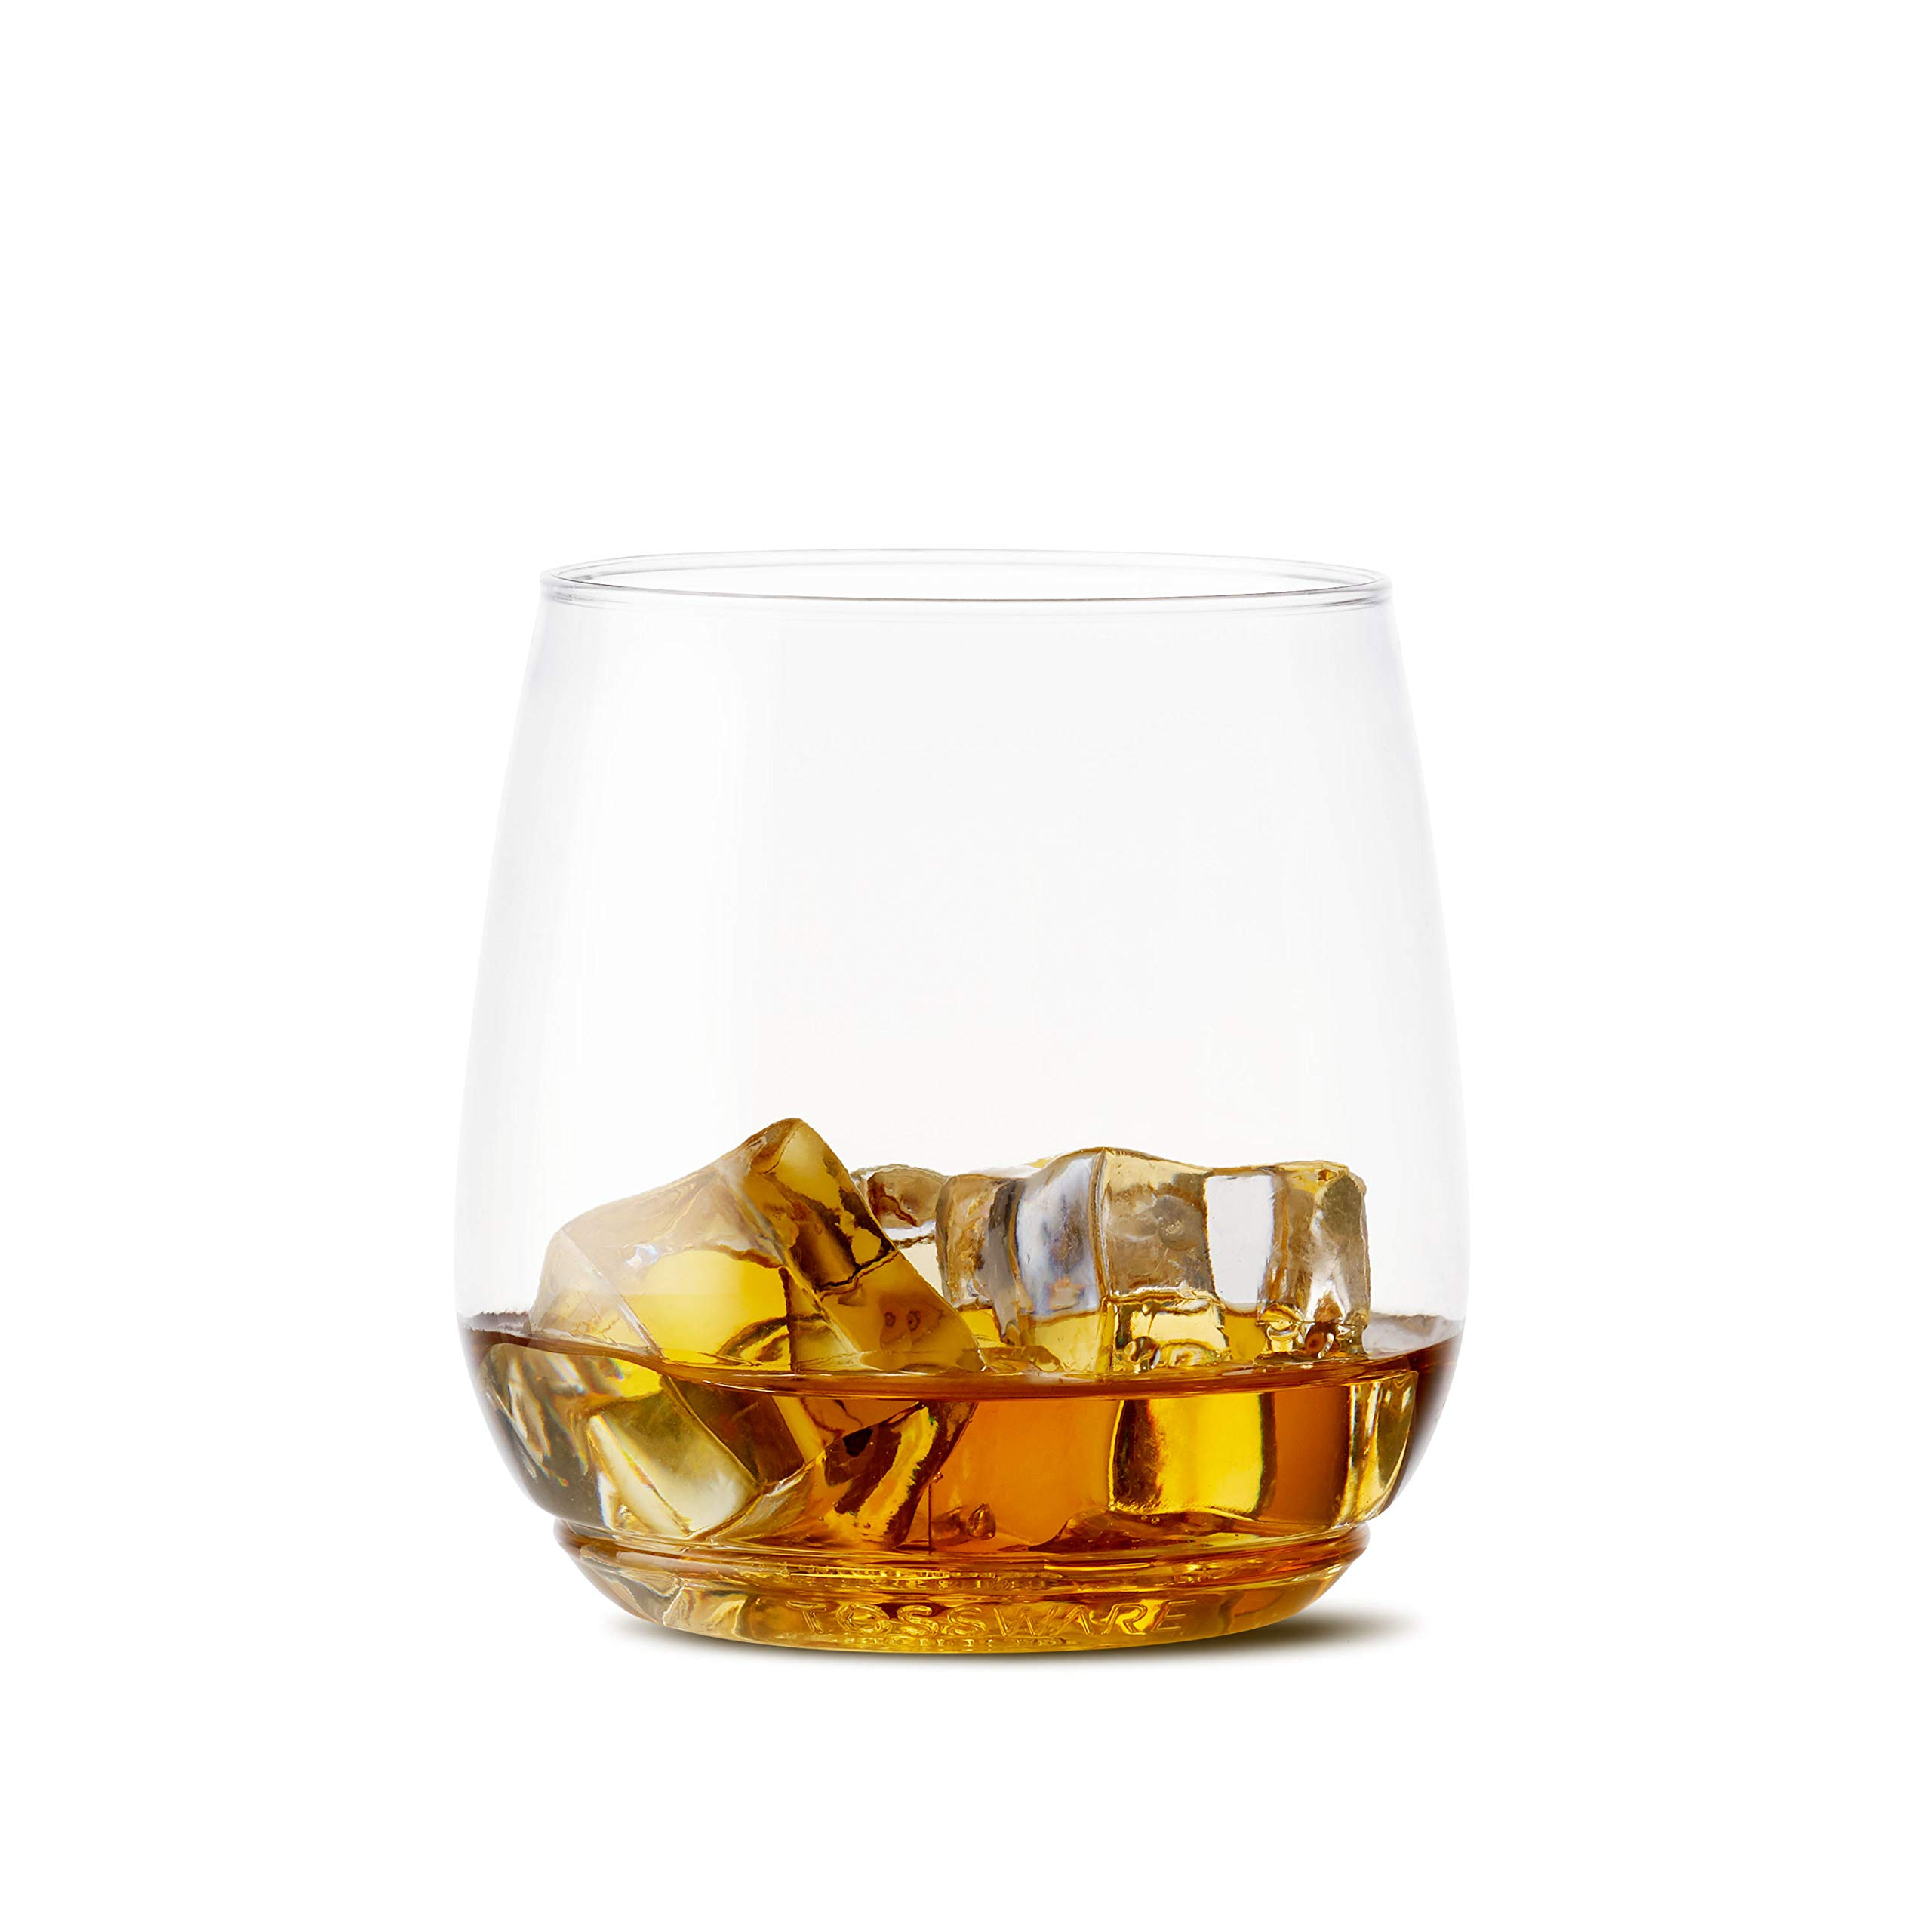 TOSSWARE 12oz Tumbler Jr - recyclable cocktail and whiskey plastic cup - SET OF 48 - stemless, shatterproof and BPA-free whiskey glasses by TOSSWARE